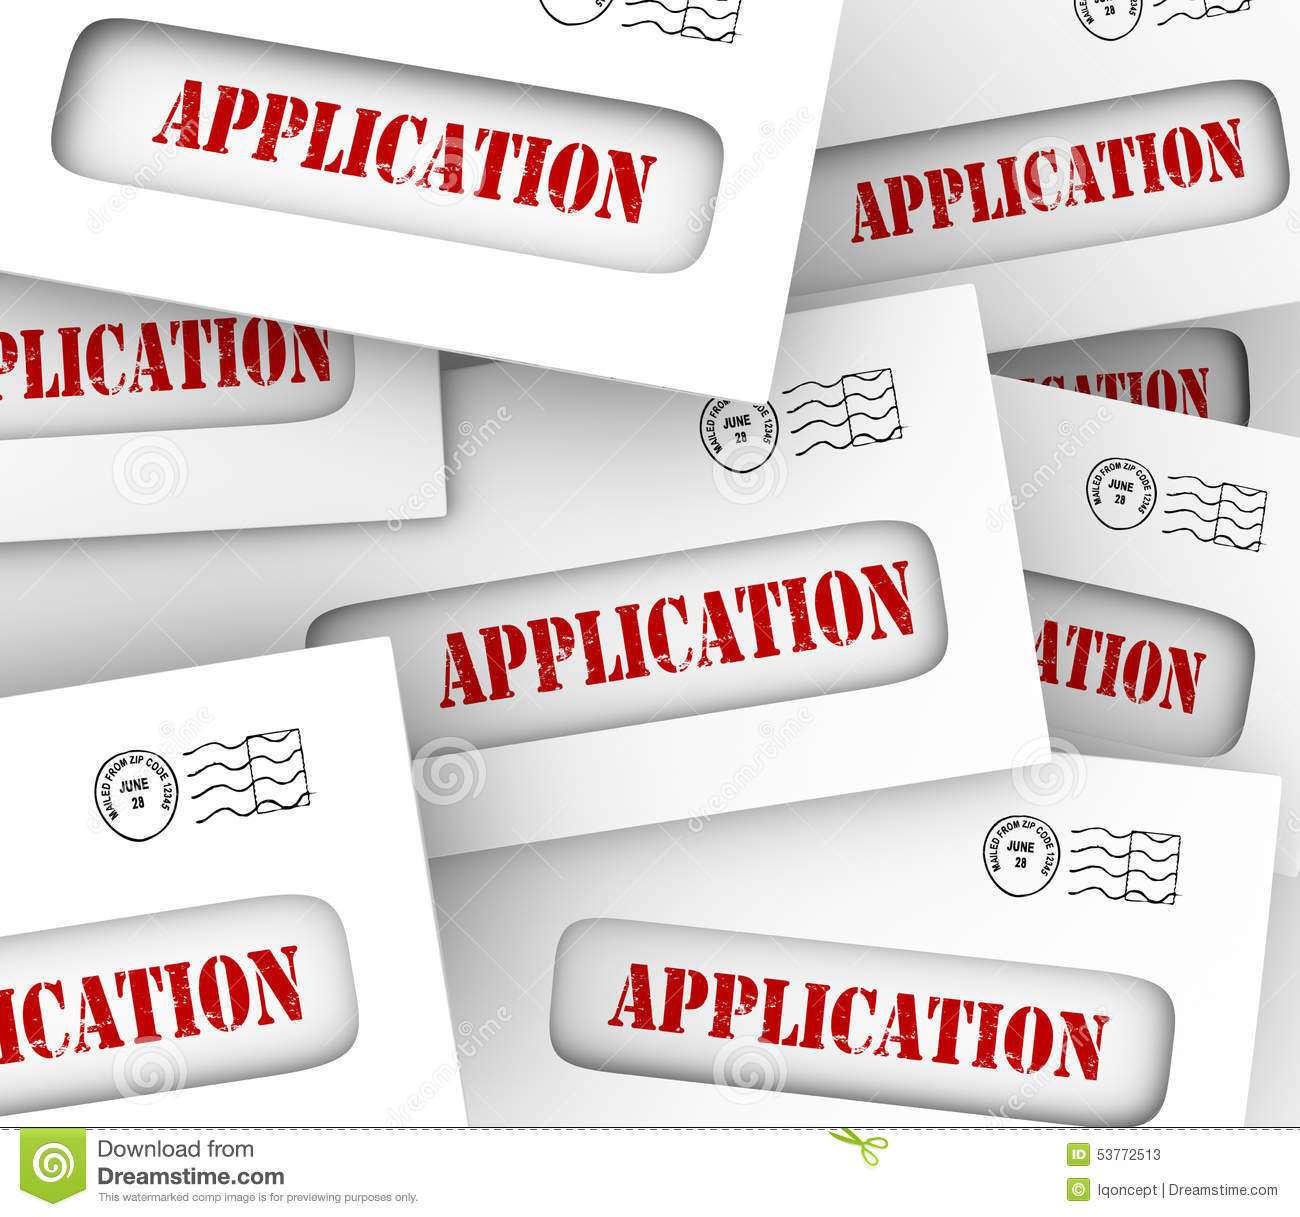 Bank Teller Cover Letter With No Experience Printable Application Word Envelopes Many Candidates Apply Job Loan